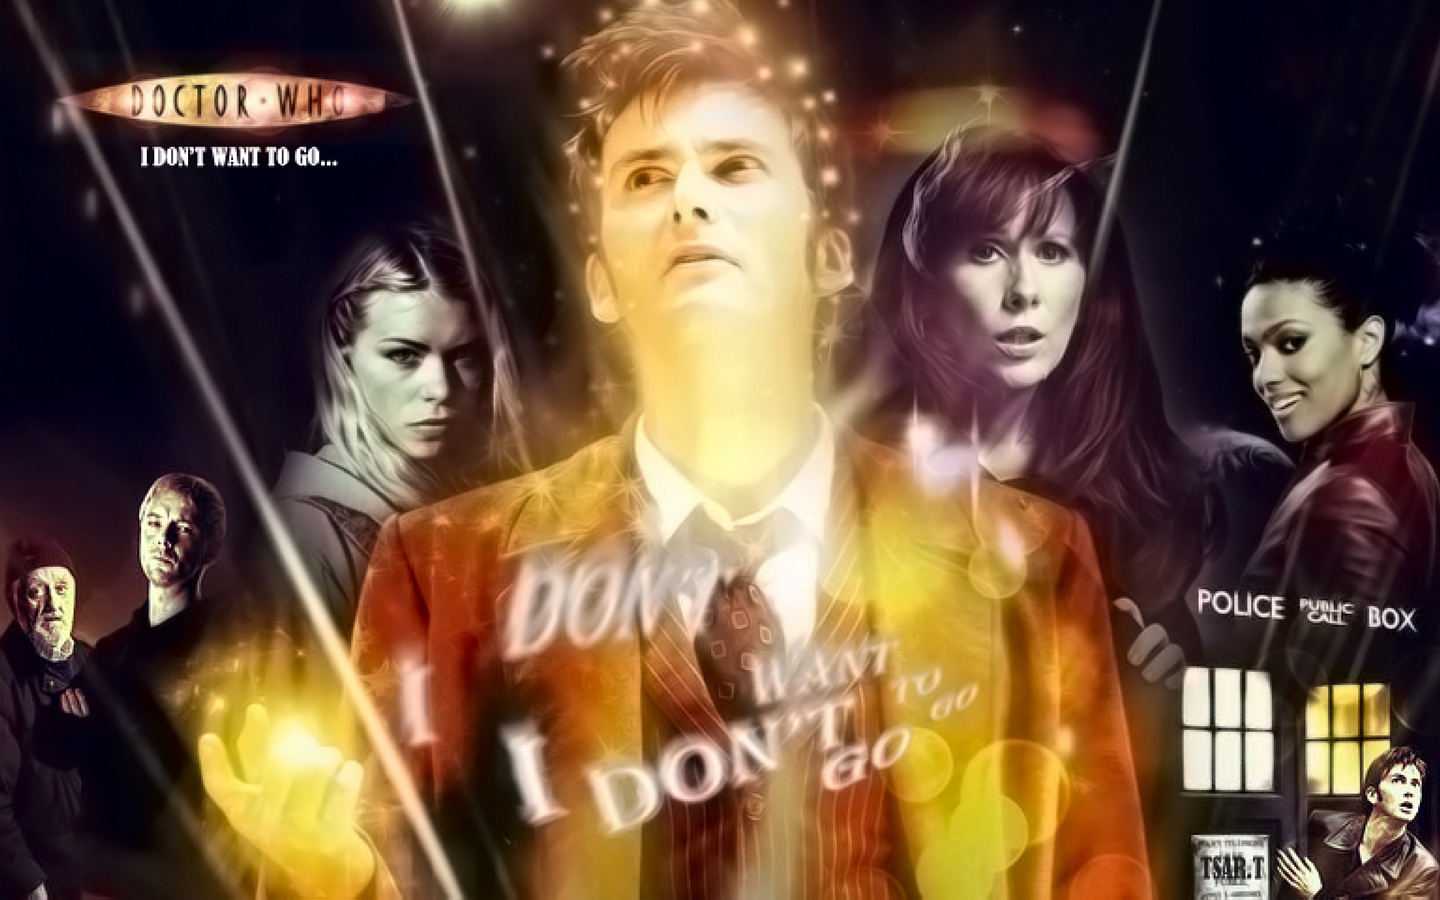 DOCTOR WHO-FAREWELL, MY LOVE